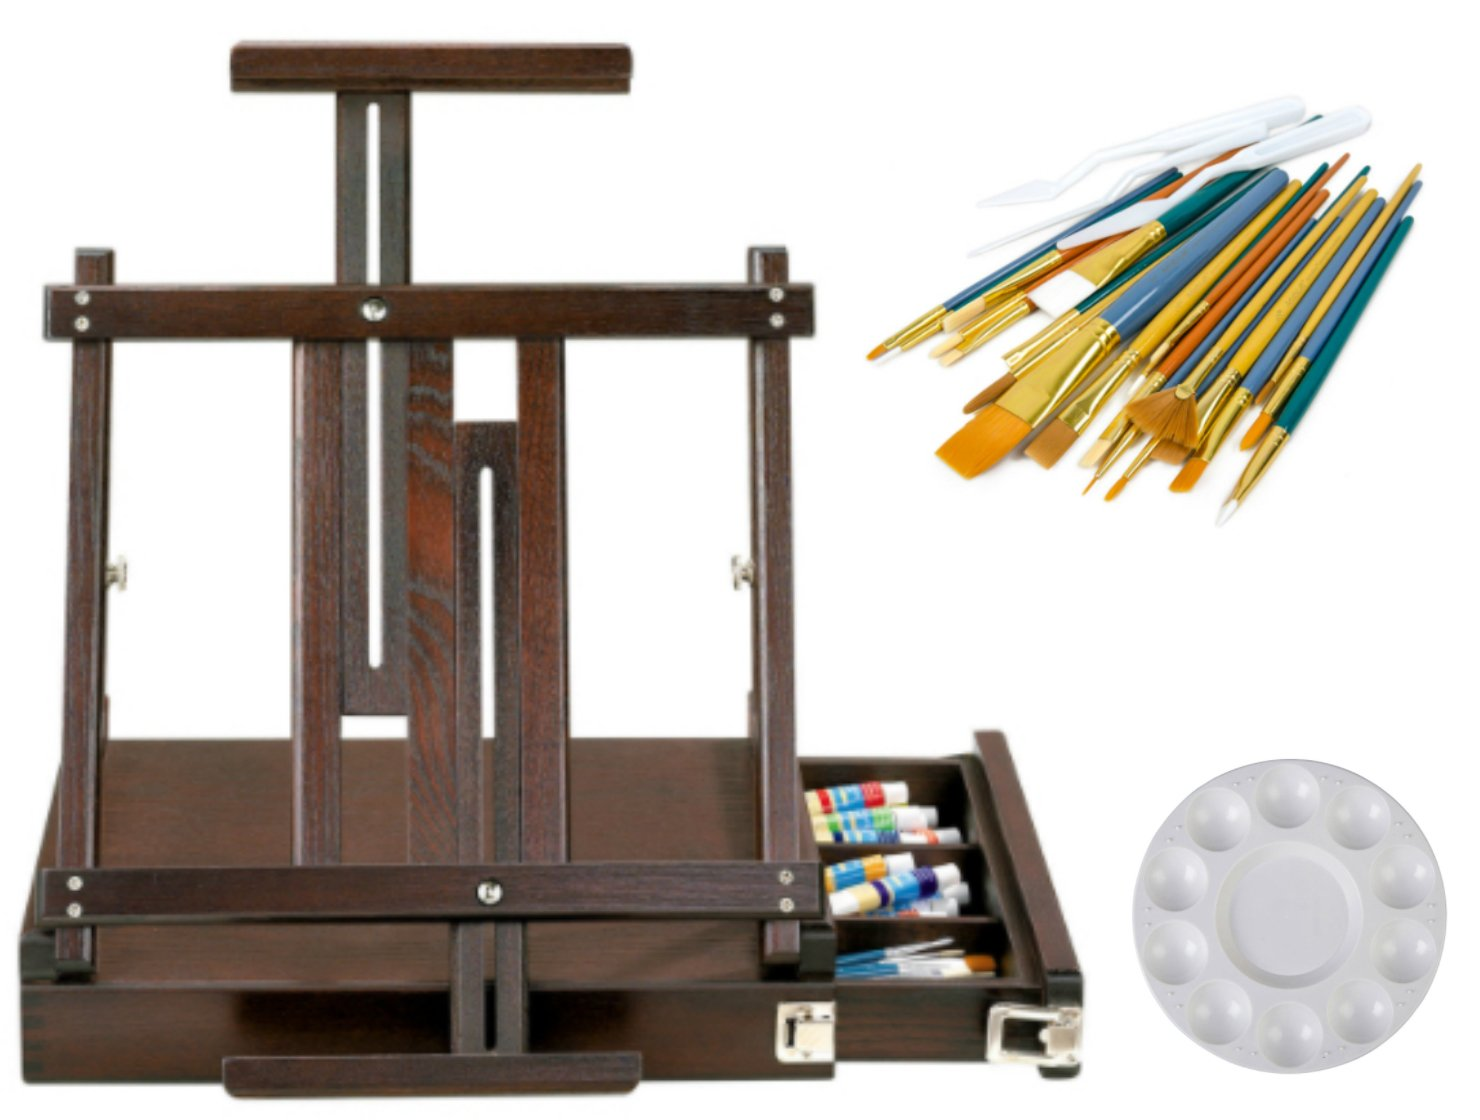 Artist's Loft Box Table Easel Art Set Plus 1 Plastic 10 Well Artist Palette and Package of 25 Assorted Brushes